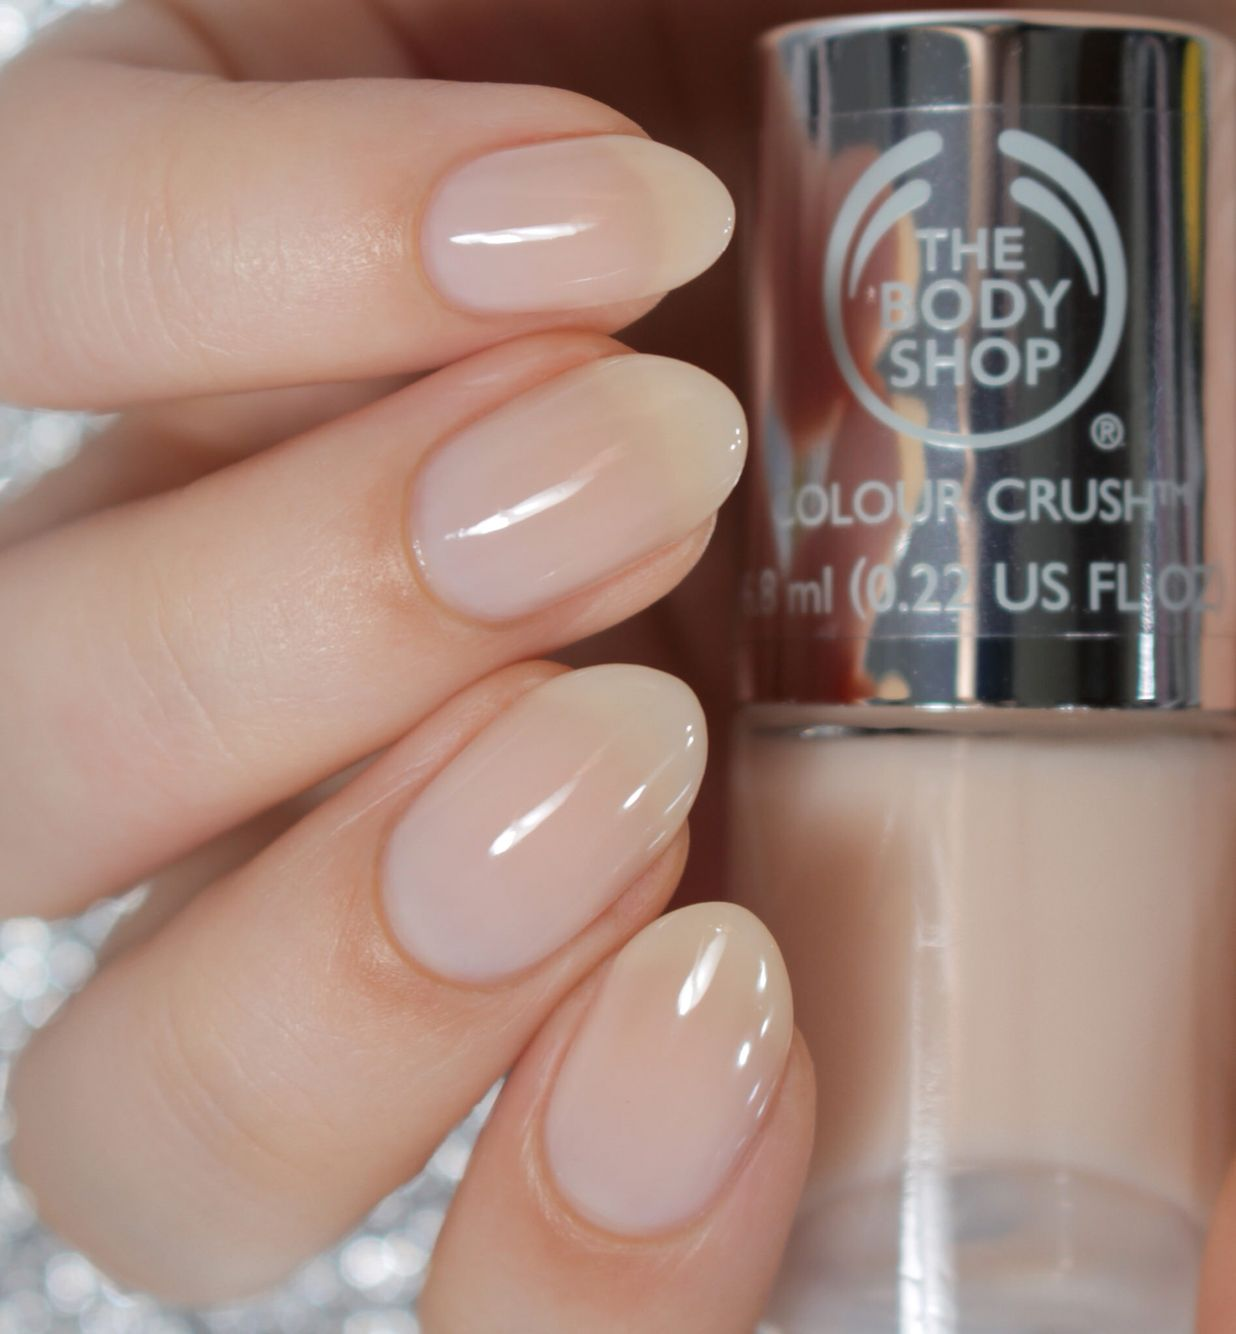 Pink Cream | The Body Shop Colour Crush Nails Collection ...